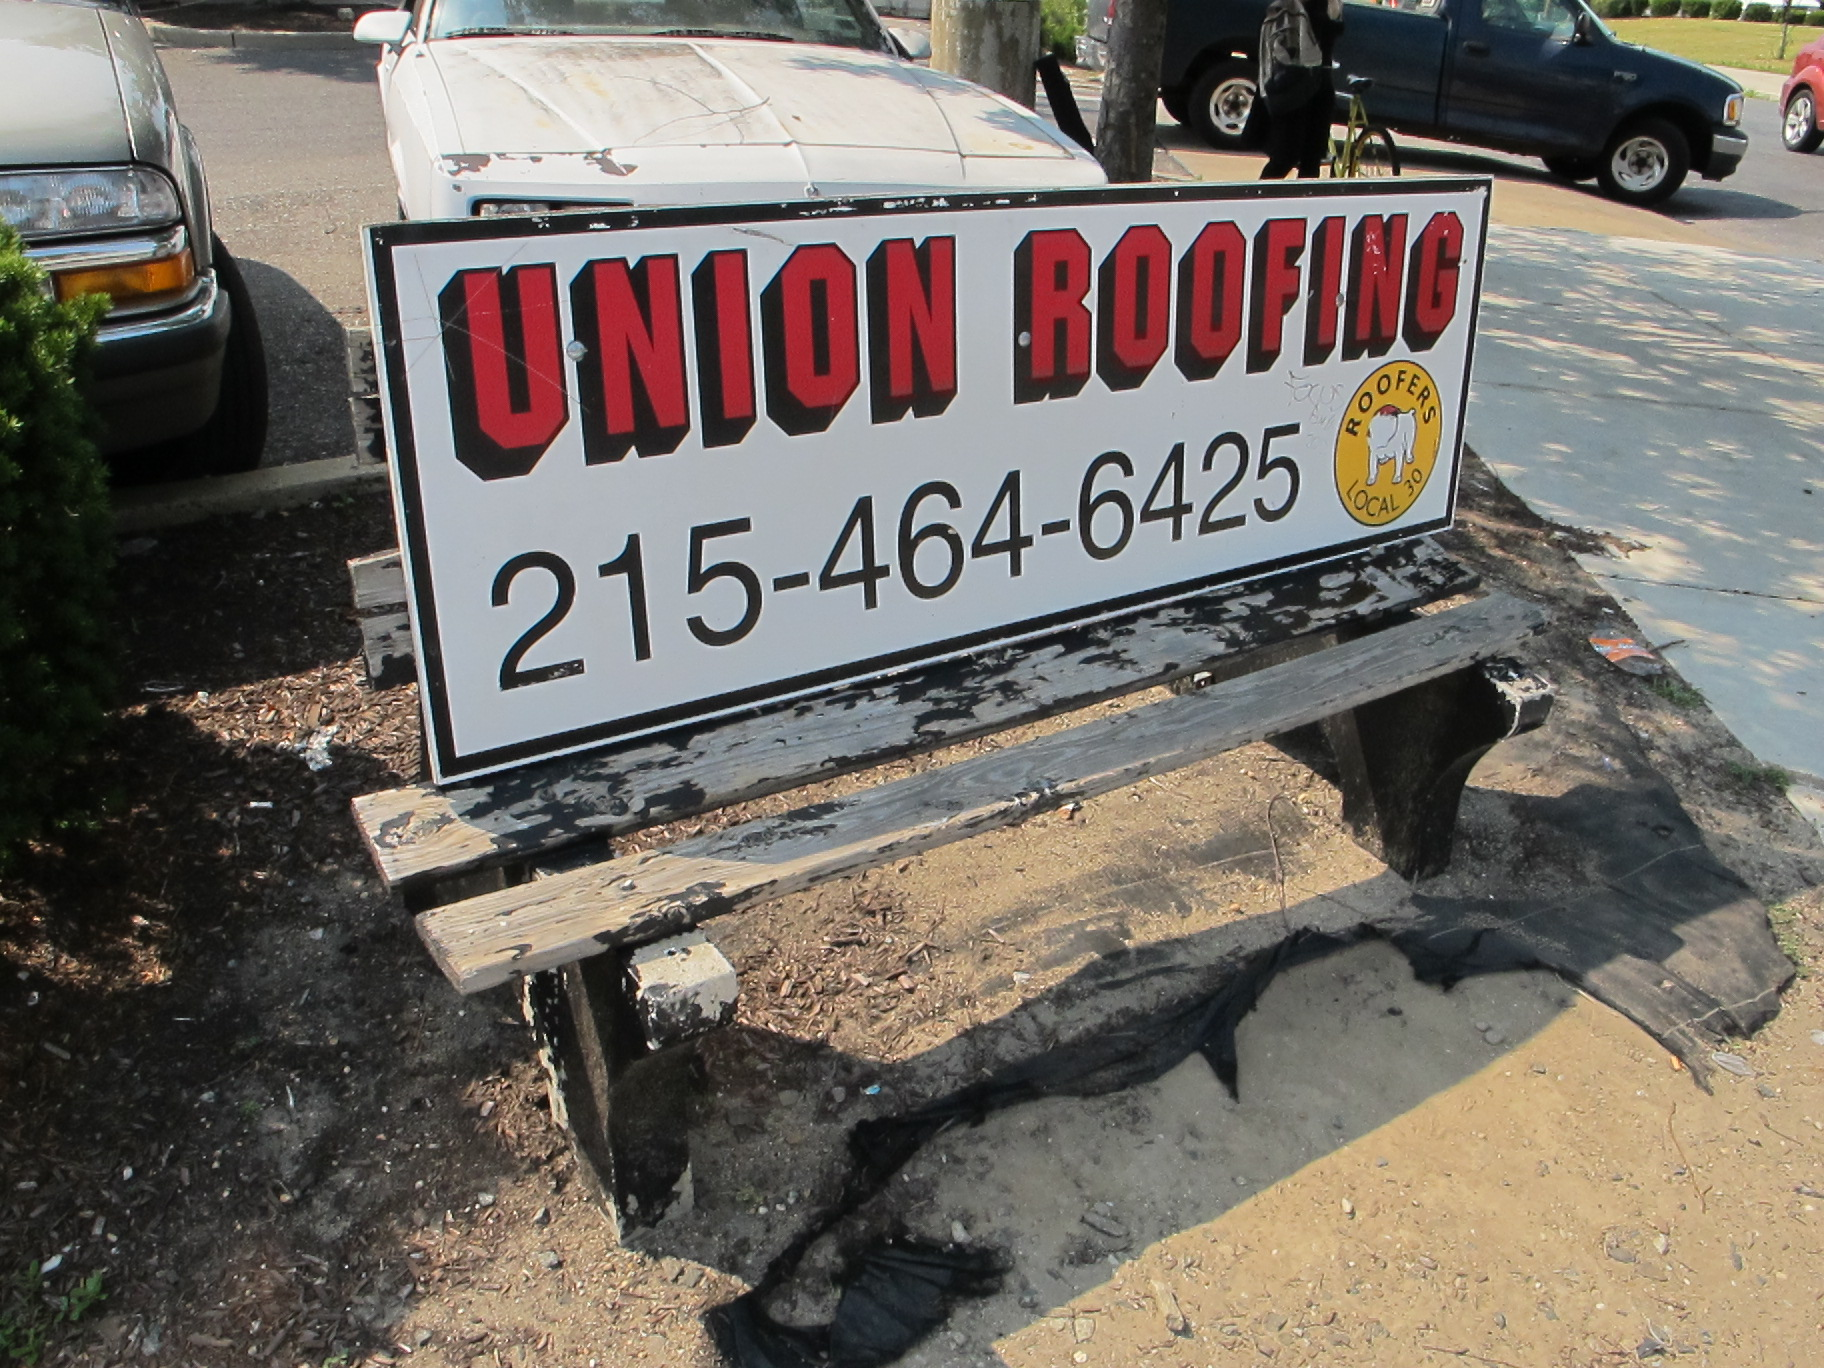 Decrepit Union Roofing bench on Aramingo Ave, June 2012. (removed)